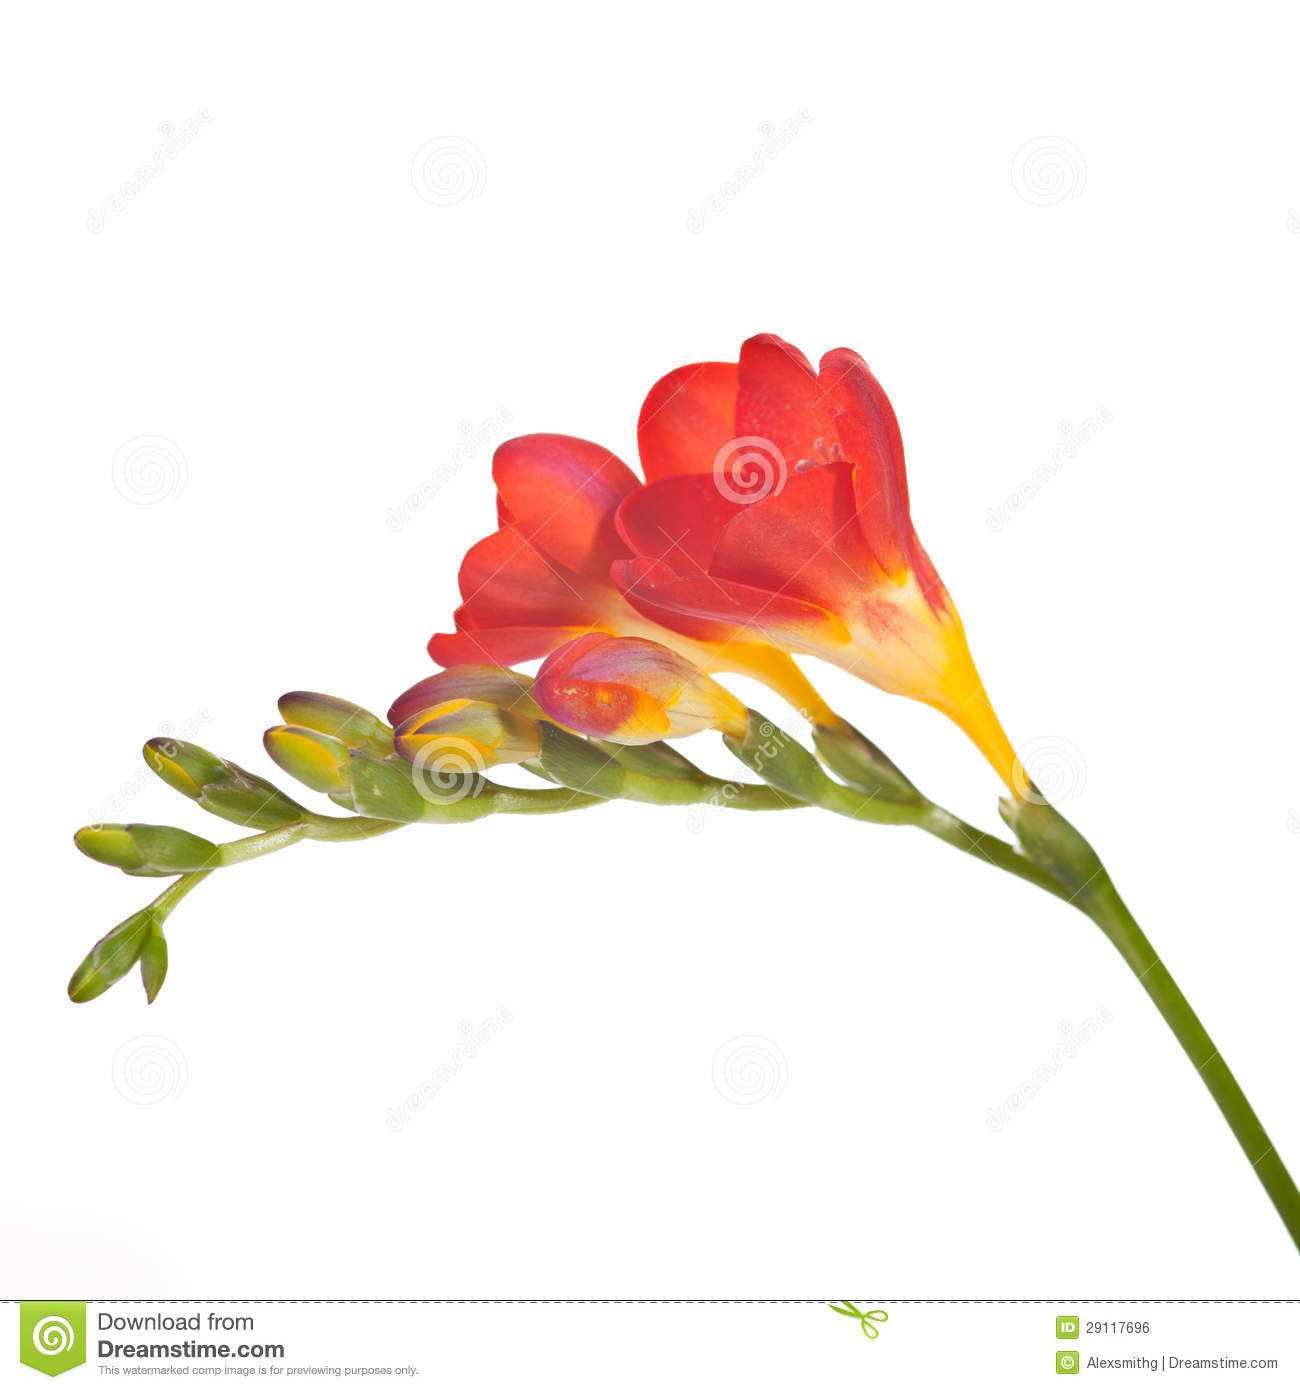 Freesia clipart #14, Download drawings